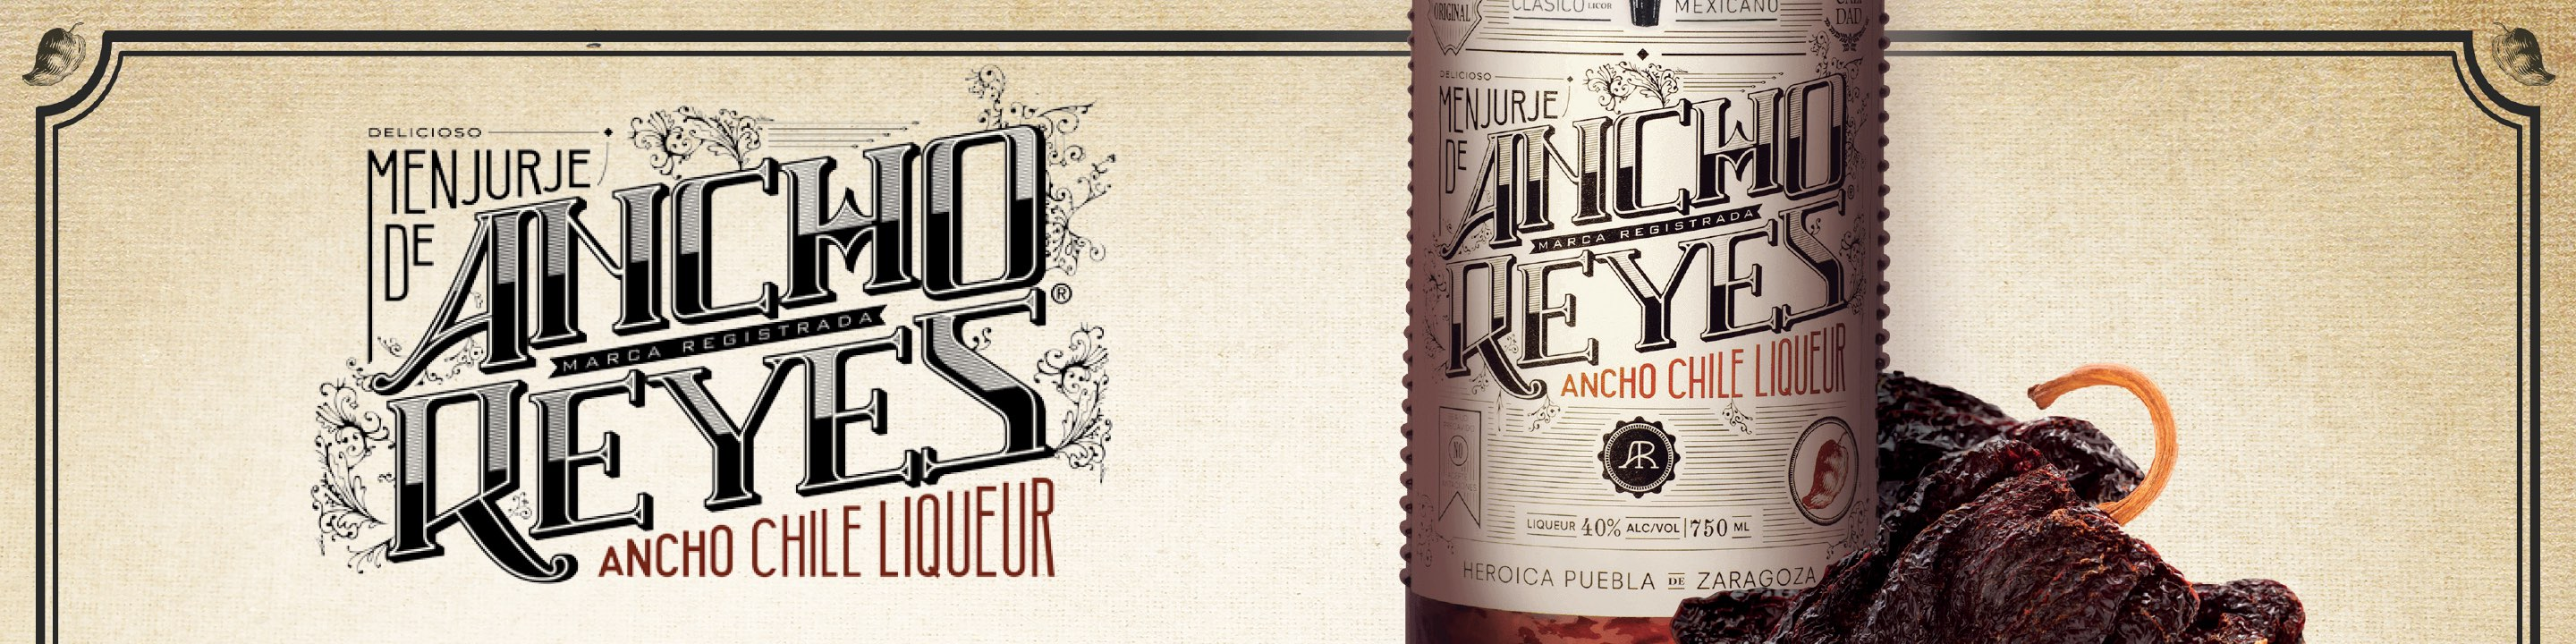 The Original Spicy Liqueur. In 1920s Puebla, the cantinas of the Barrio del Artista bustled with artists and intellectuals who gathered to exchange ideas over original homemade liqueurs known as menjurjes. One especially popular menjurje was handcrafted from the ancho chile. We pay homage to those original recipes with Ancho Reyes Original and Ancho Reyes Verde – authentic Mexican liqueurs steeped in the tradition of Puebla. Buy Ancho Reyes online now from nearby liquor stores via Minibar Delivery.